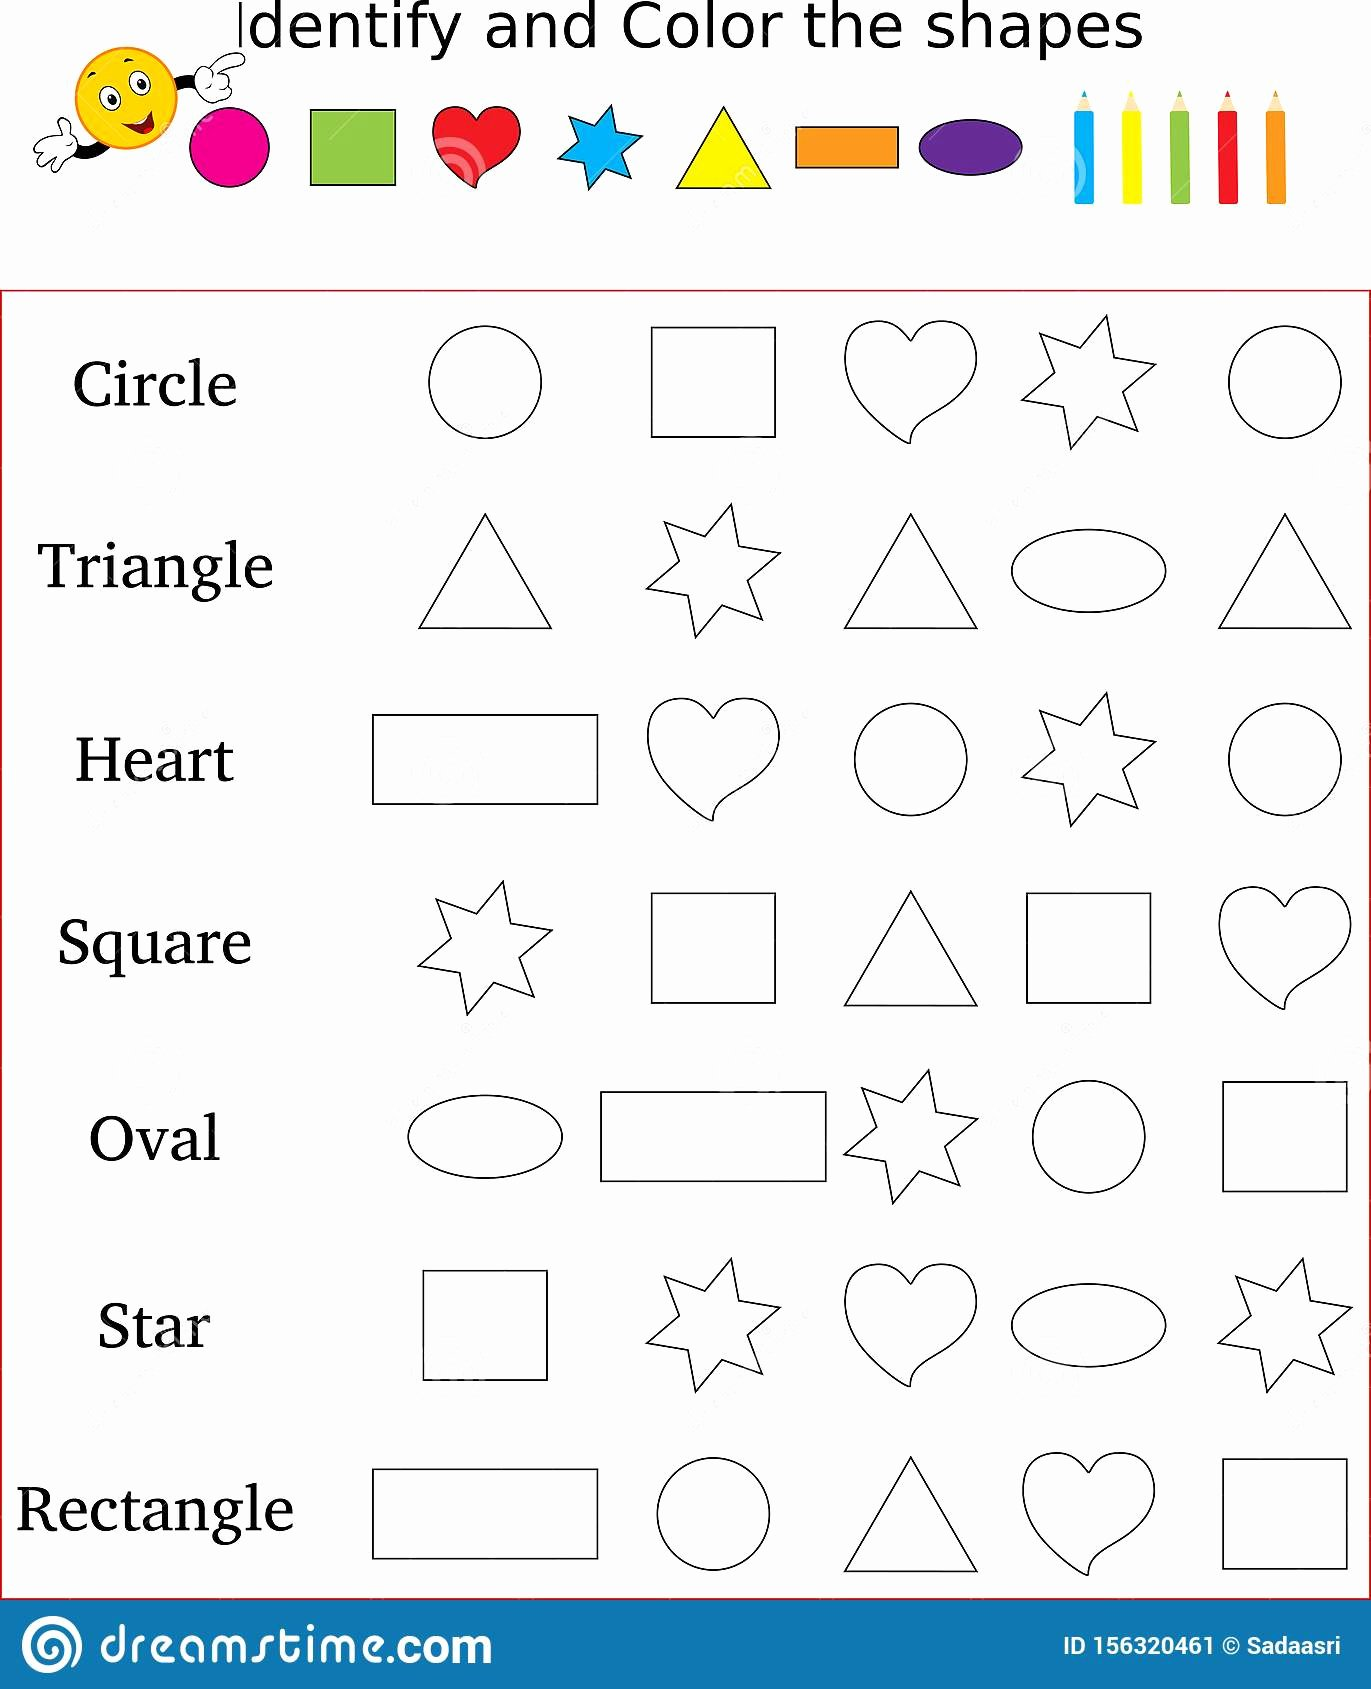 Recognizing Colors Worksheets for Preschoolers Free Identify and Color the Correct Shape Worksheet Stock Image